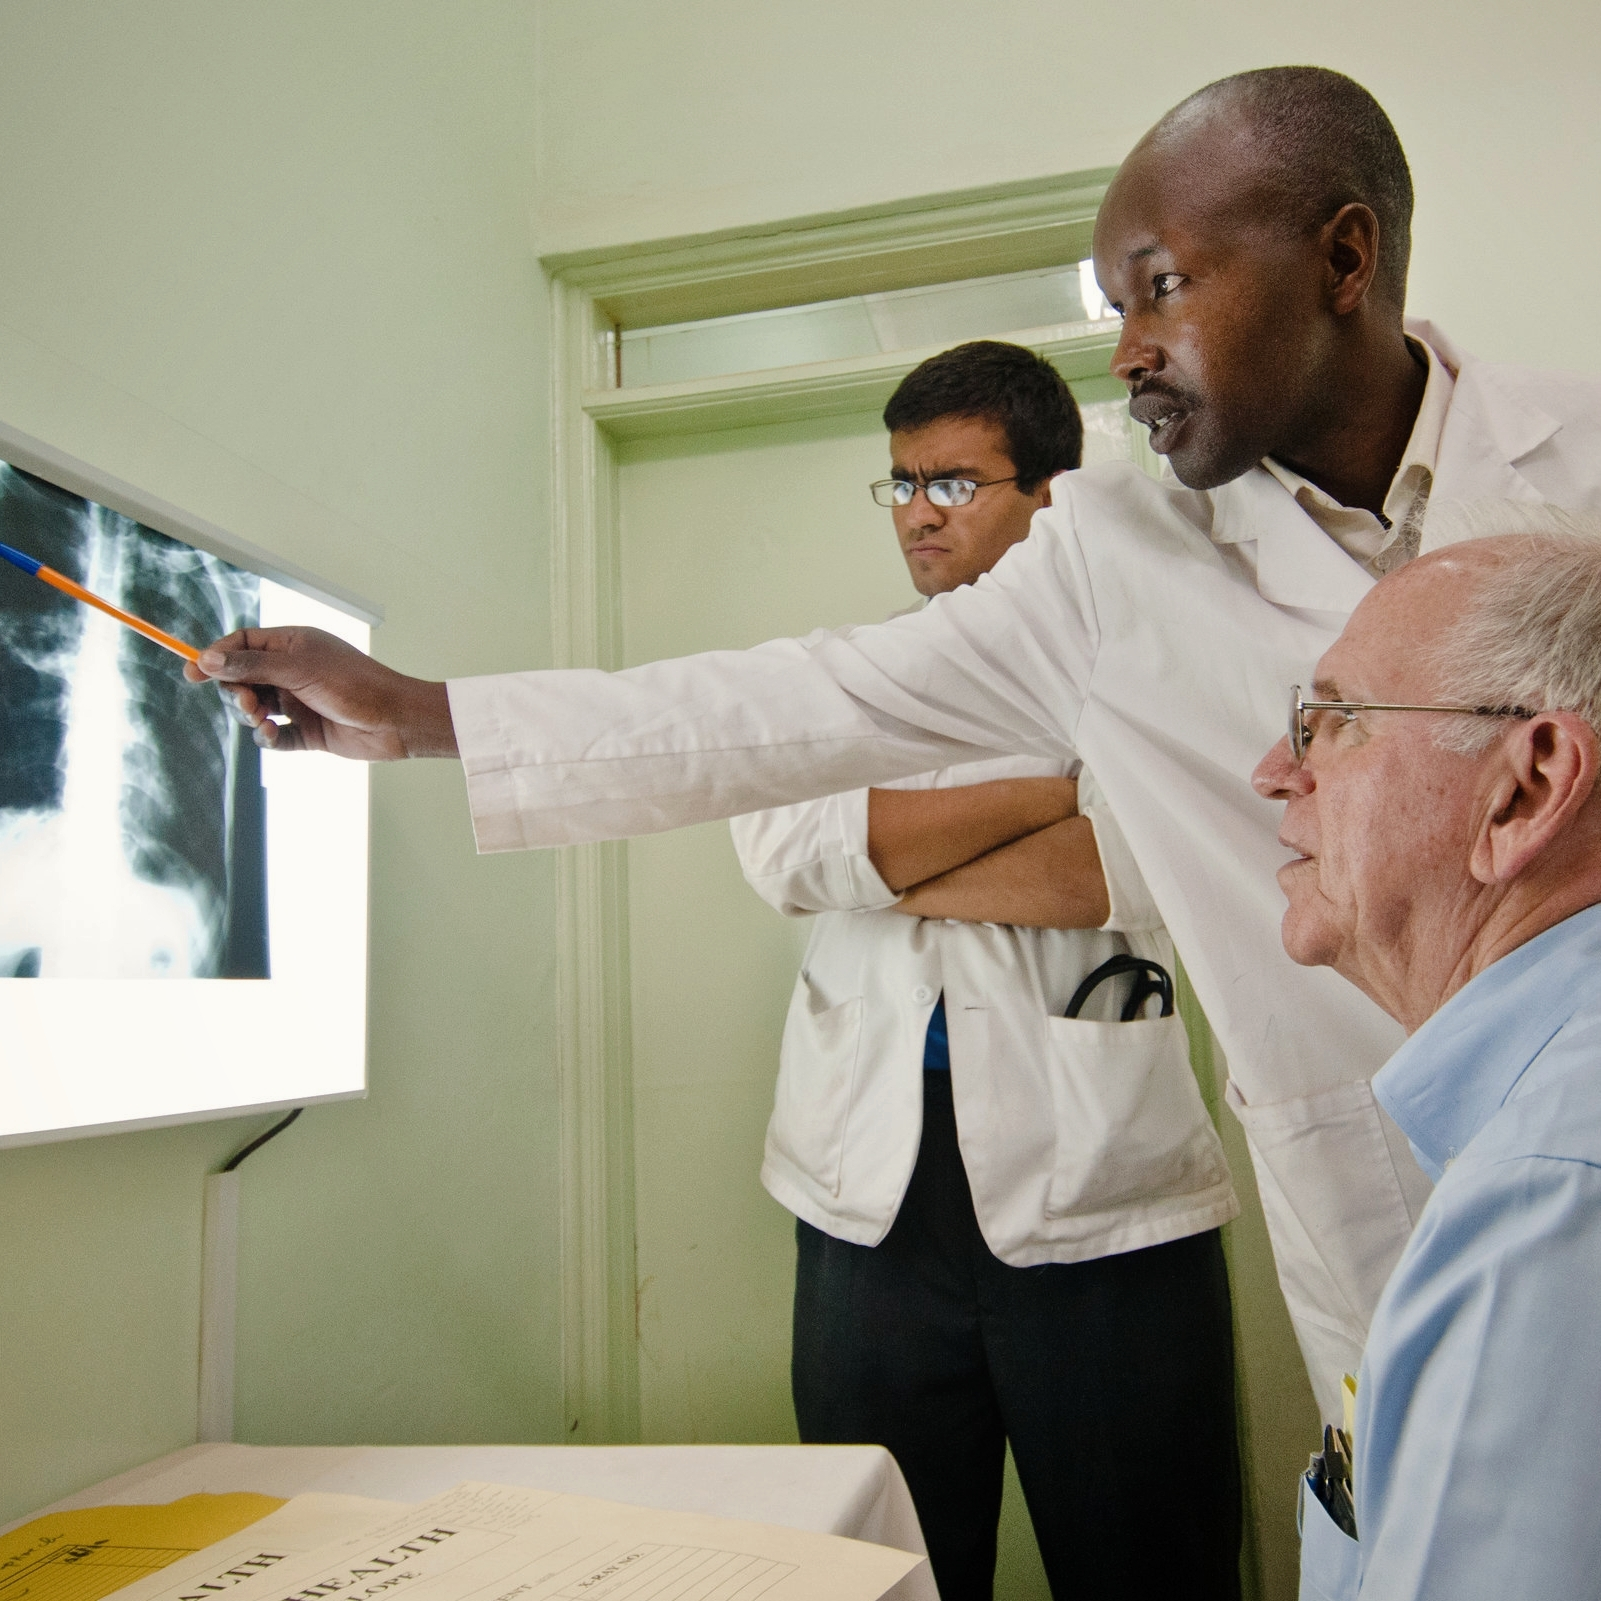 Specialty Care - Tuberculosis and malaria treatment, palliative care, and more.